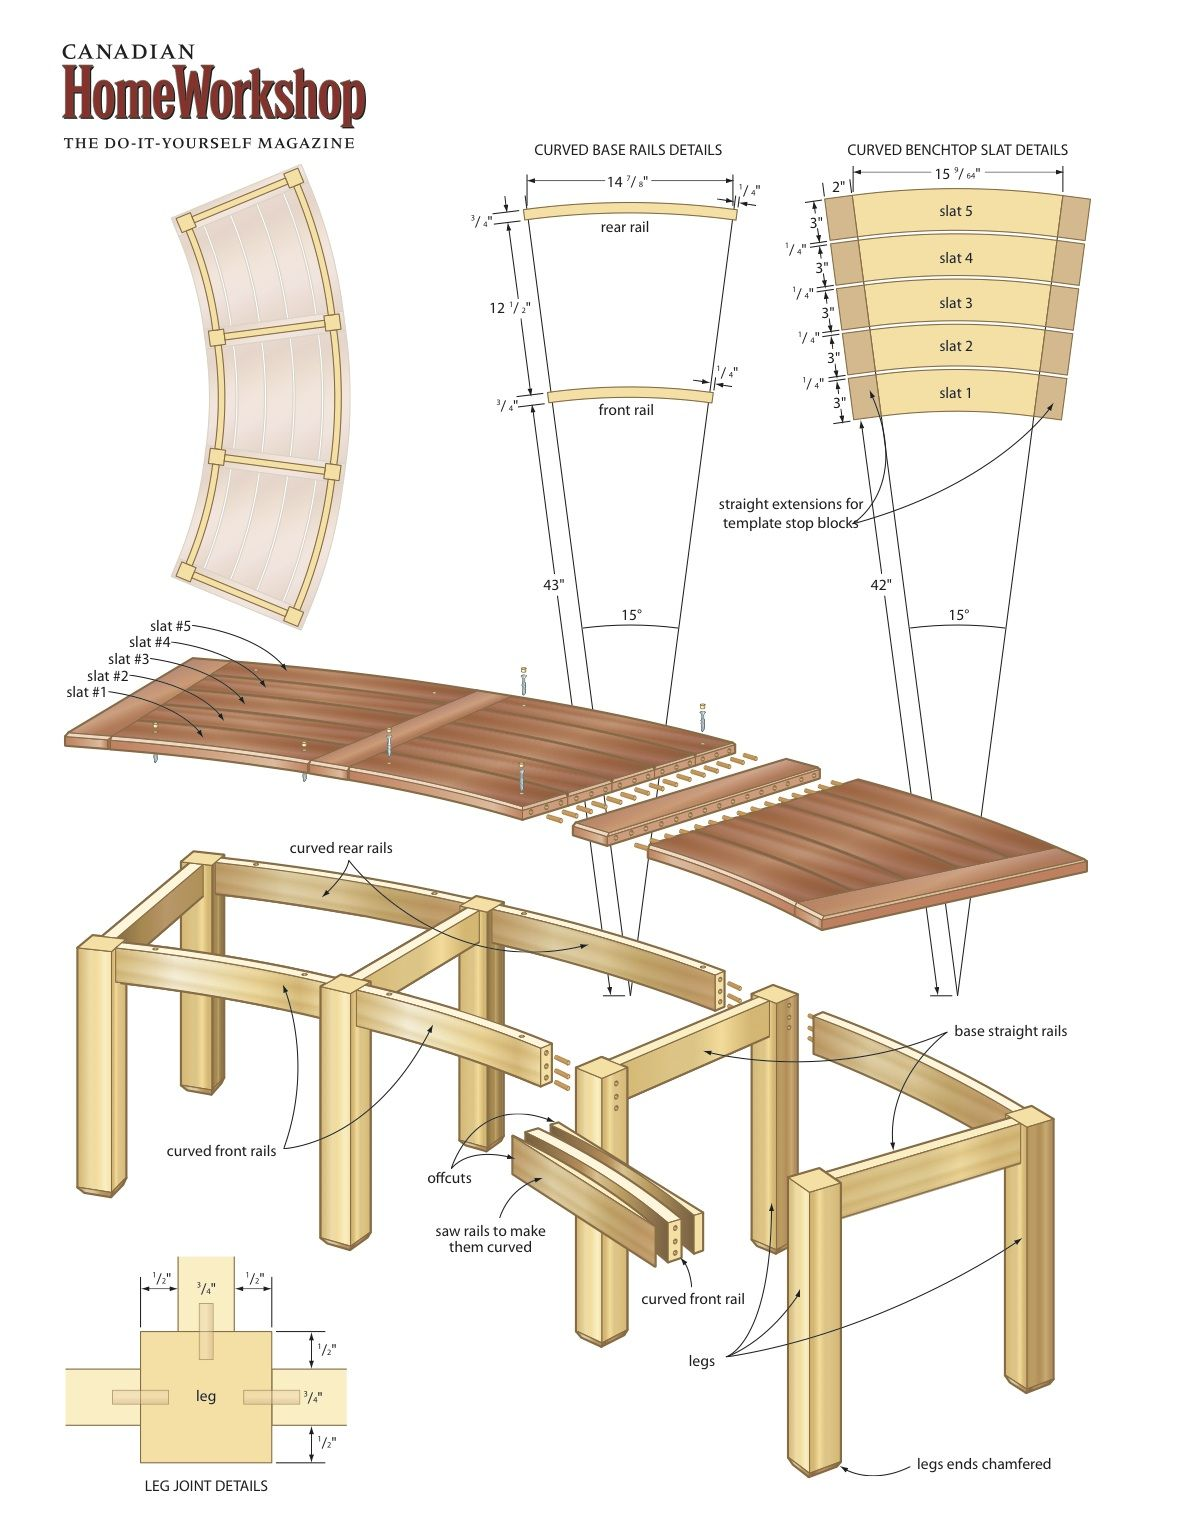 Best 25 curved bench ideas on pinterest diy e46 for Garden table designs wood